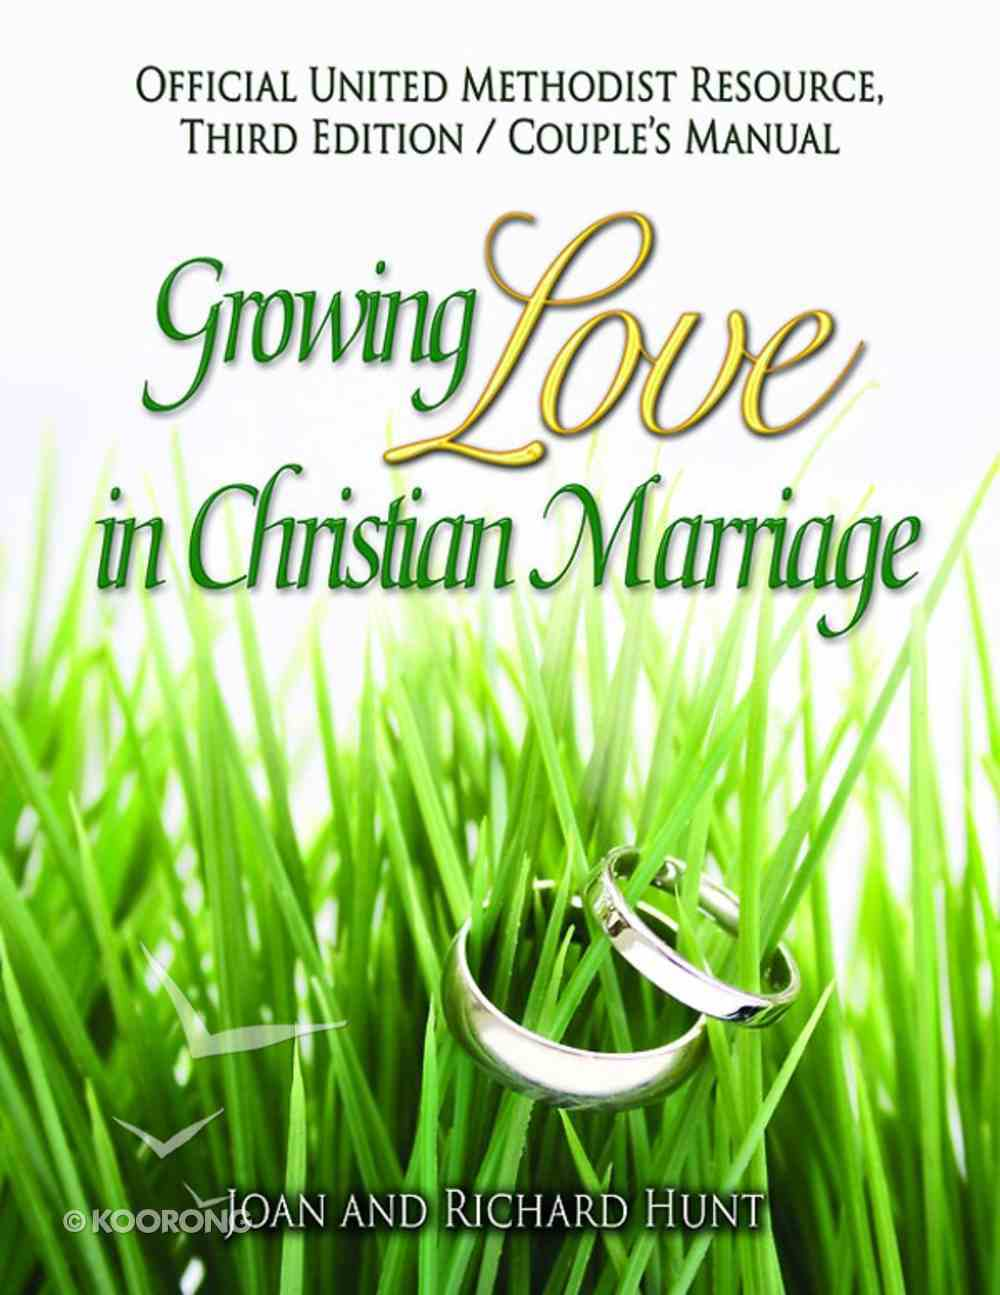 Growing Love in Christian Marriage: Couple's Manual (2-Pack) (3rd Edition) (101 Questions About The Bible Kingstone Comics Series) eBook